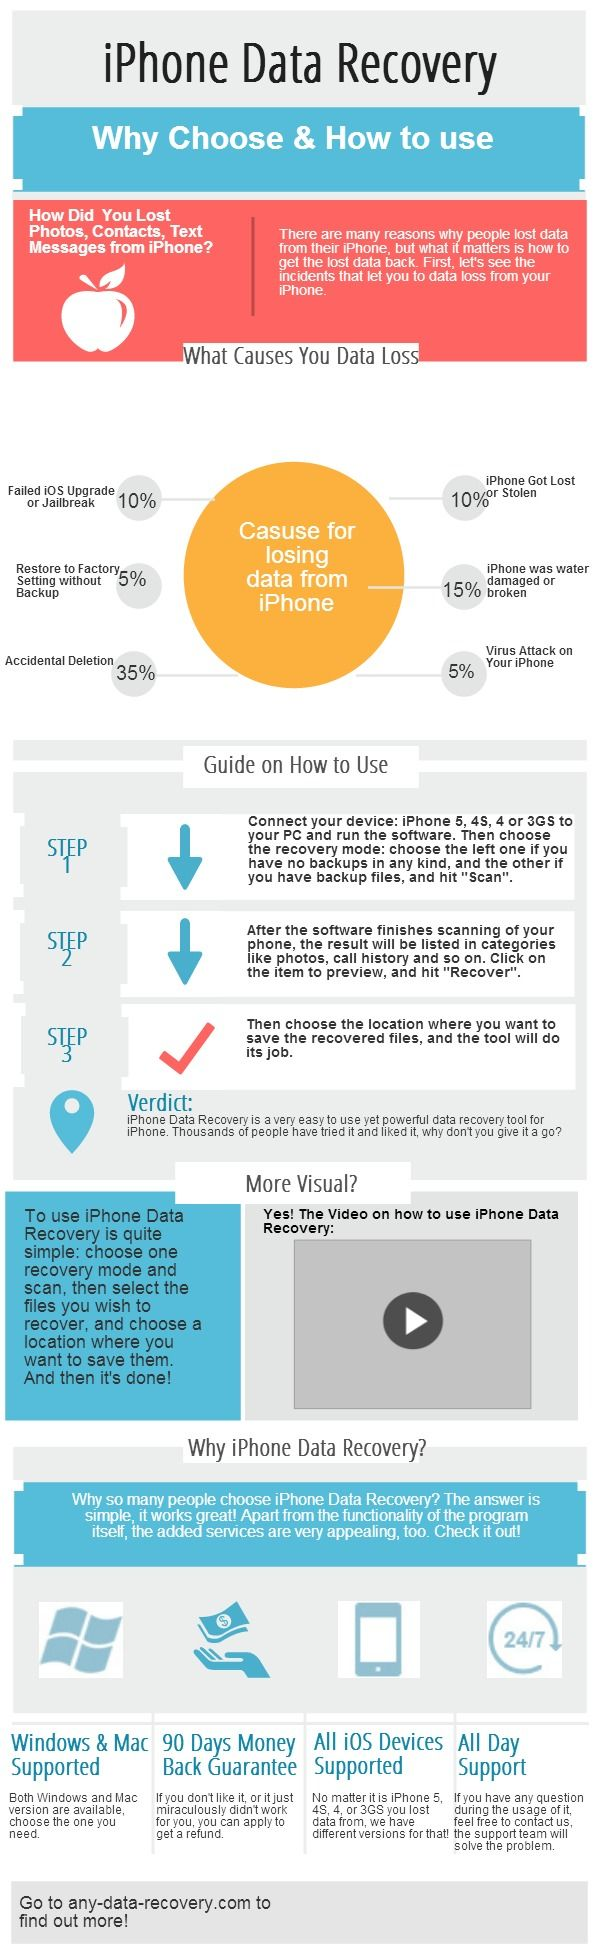 iPhone Data Recovery | @Piktochart Infographic